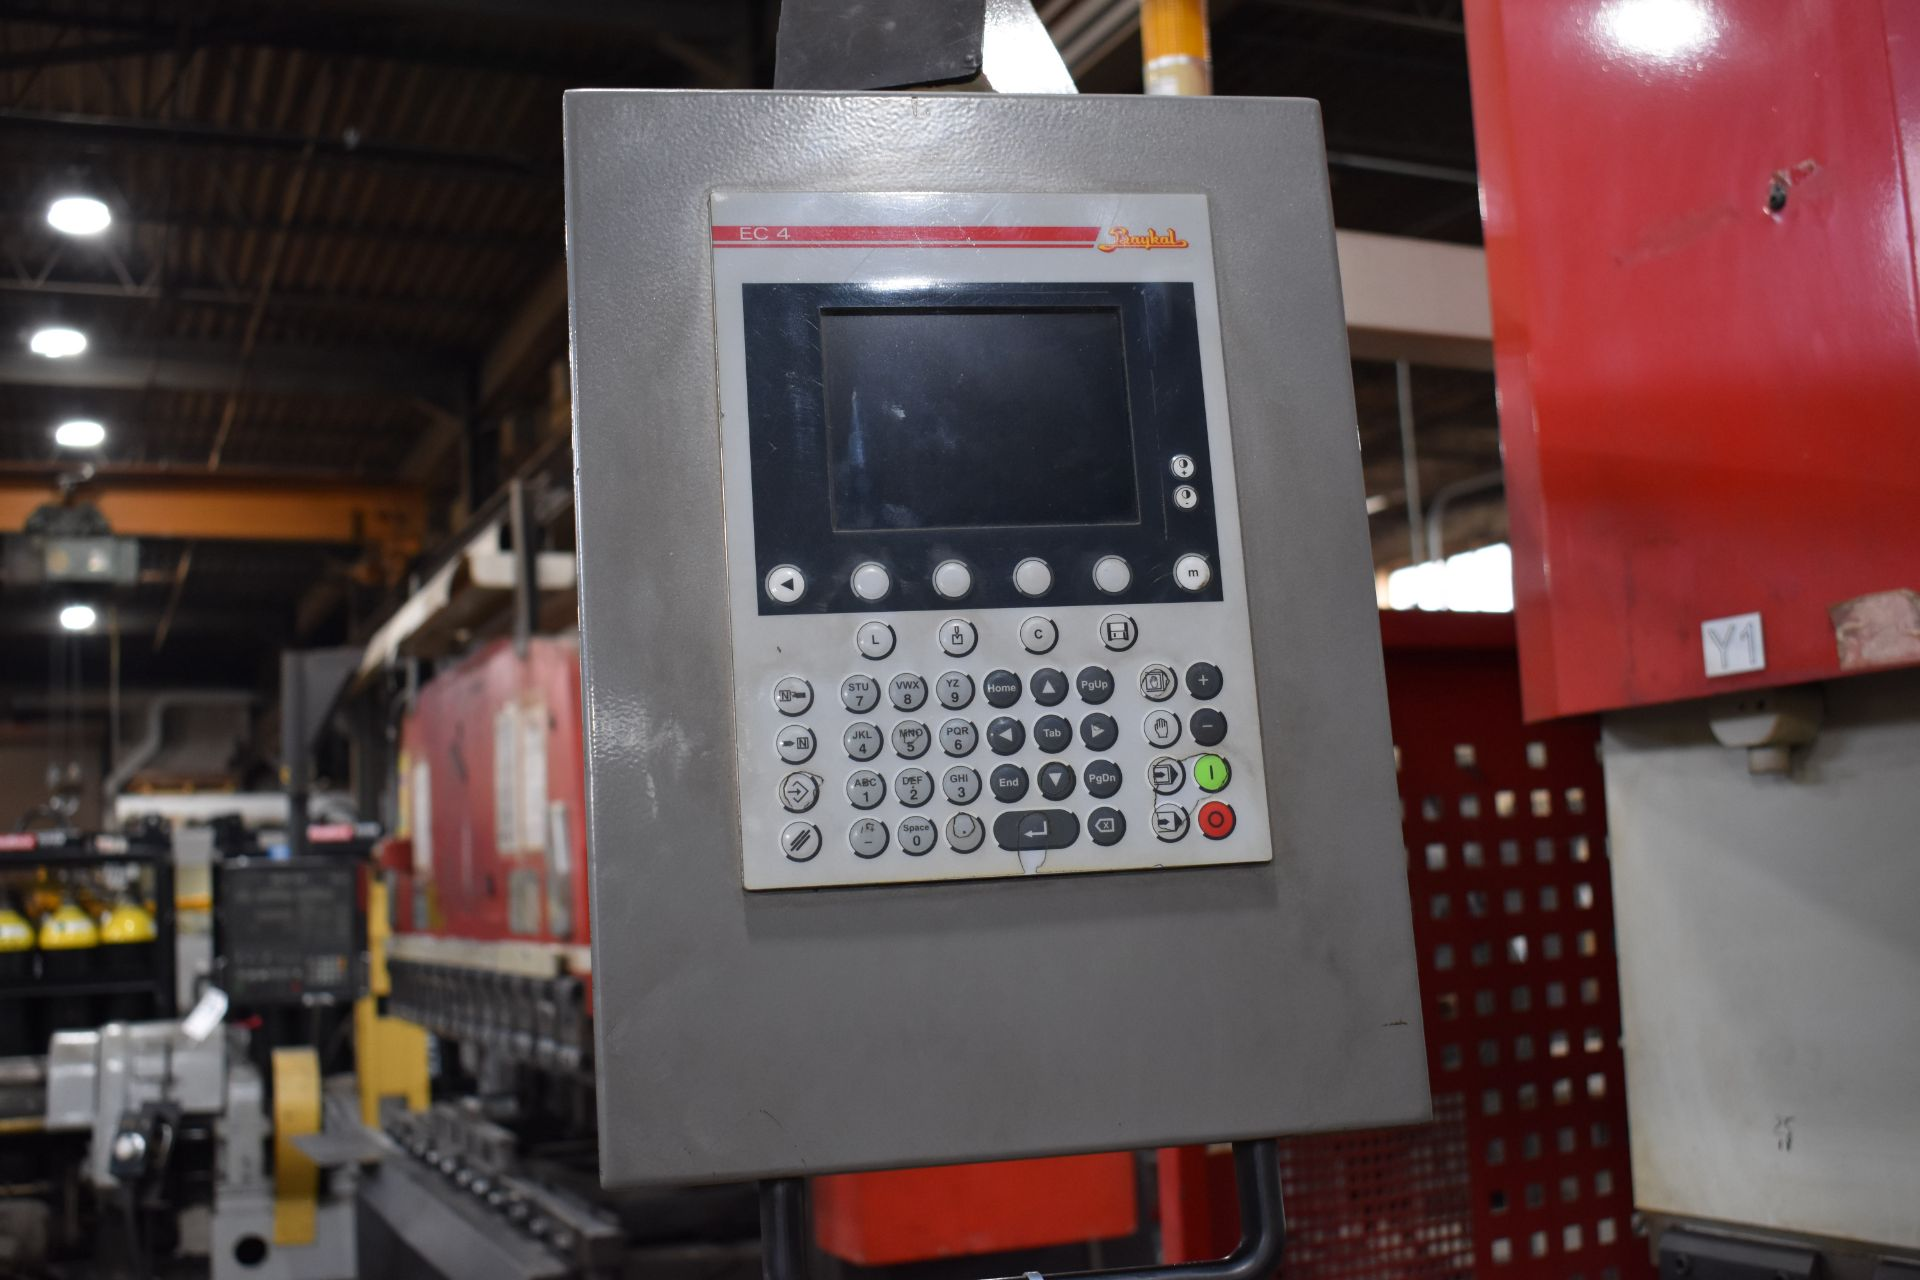 Lot 37 - Baykal Fab-Line 12 ft. x 150 Ton Model APHS3706+150 Compact CNC Hydraulic Press Brake, S/N 11835 (